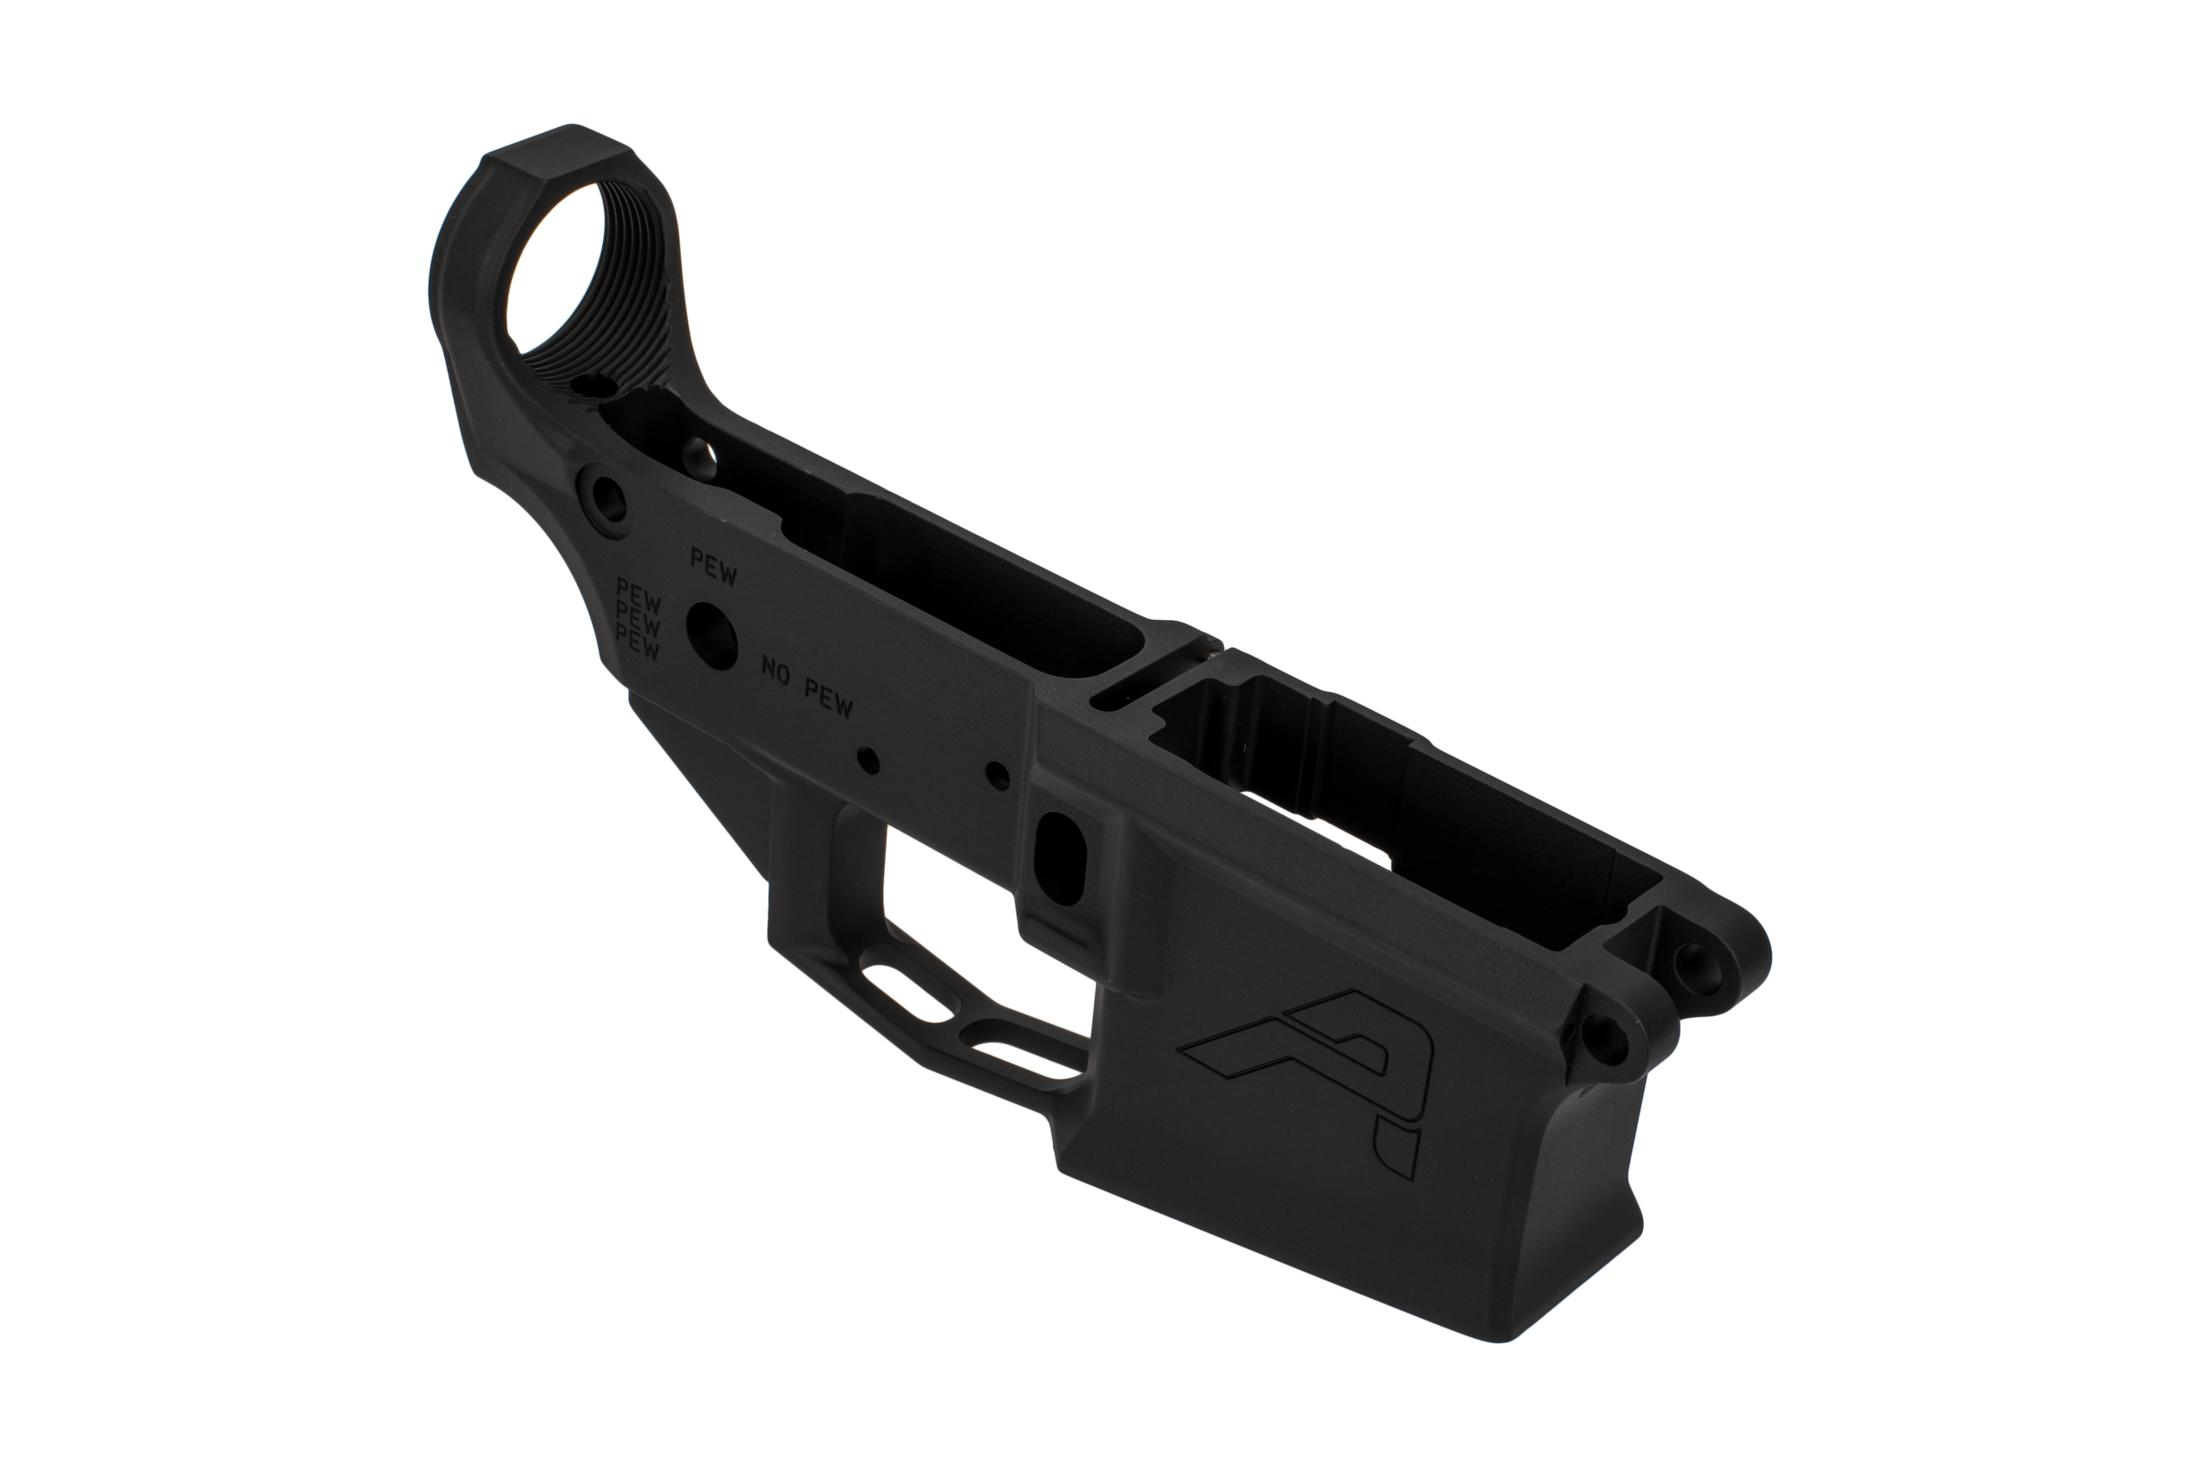 The Aero Precision stripped M4E1 lower receiver features a flared magazine well